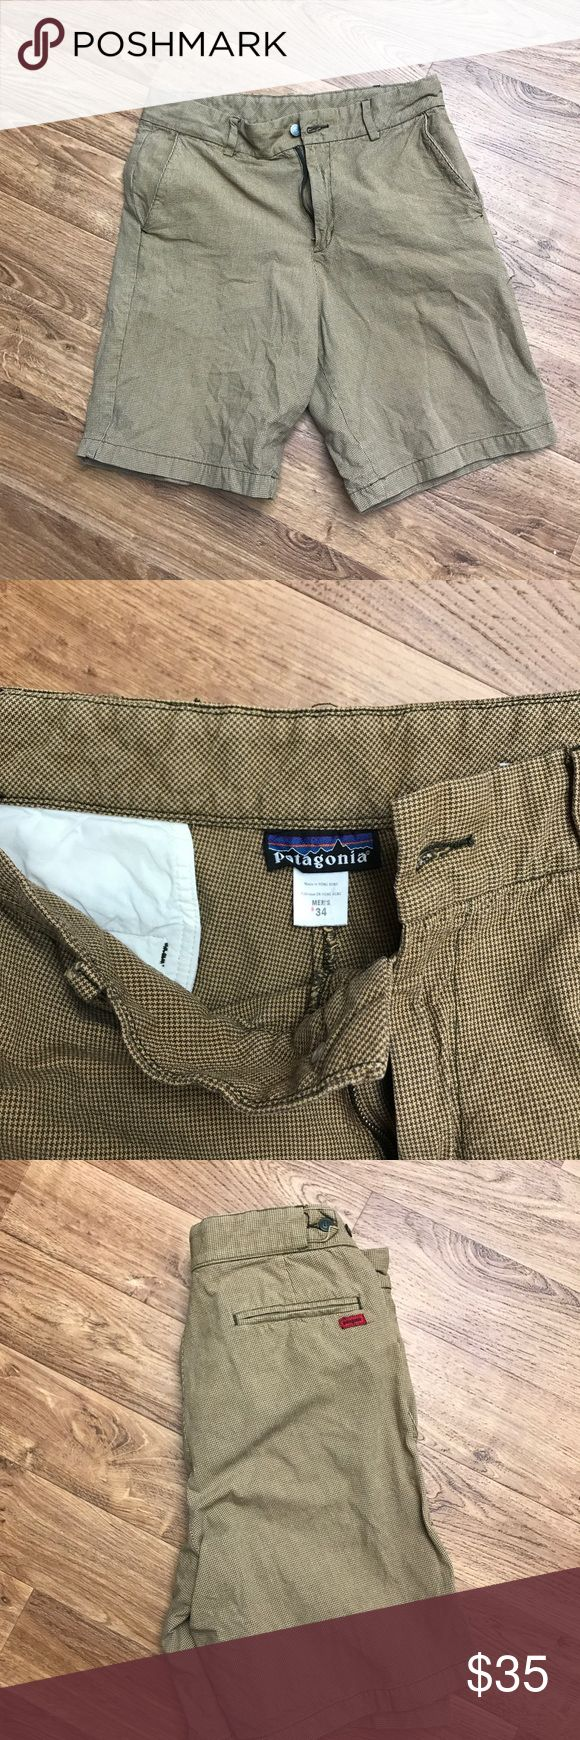 Patagonia Men's Shorts 34 Red Tag Only flaw is small red dot that the store I bought it placed on it to mark as a sale item. No holes or rips. Great shorts. Very sturdy. Great shorts. Only flaw is small red dot on size tag (pictured) placed by store to reflect sale item. Bought in a bundle with several other shorts with the elusive Red Tag by patagonia. Patagonia Shorts